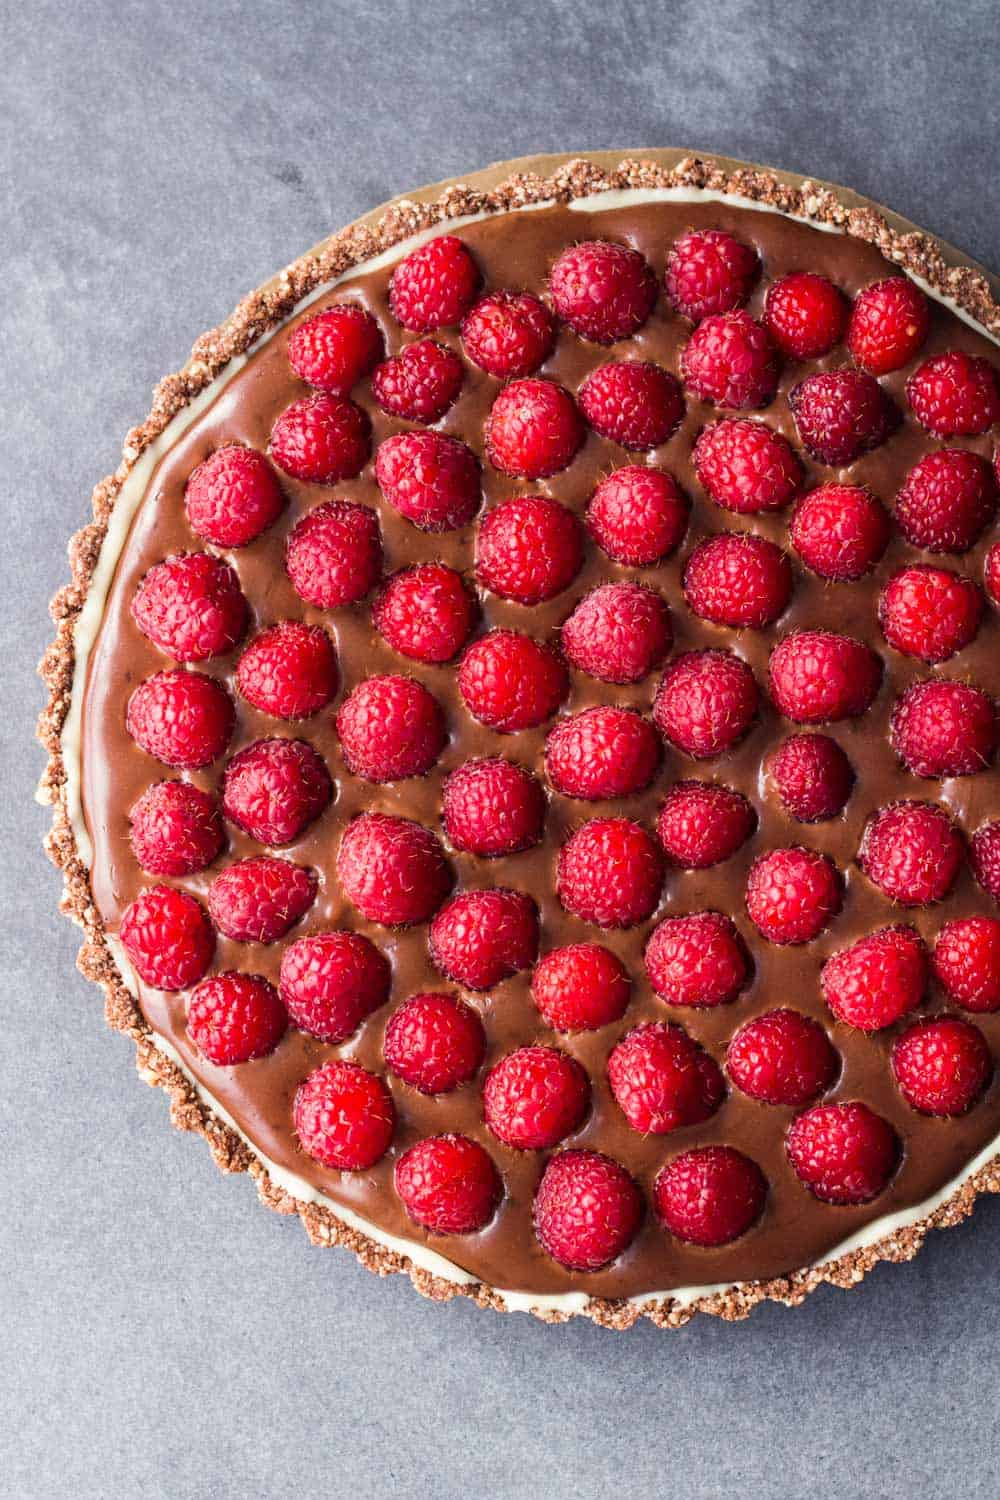 ... Almond Chocolate Raspberry Tart made with a vegan almond crust and